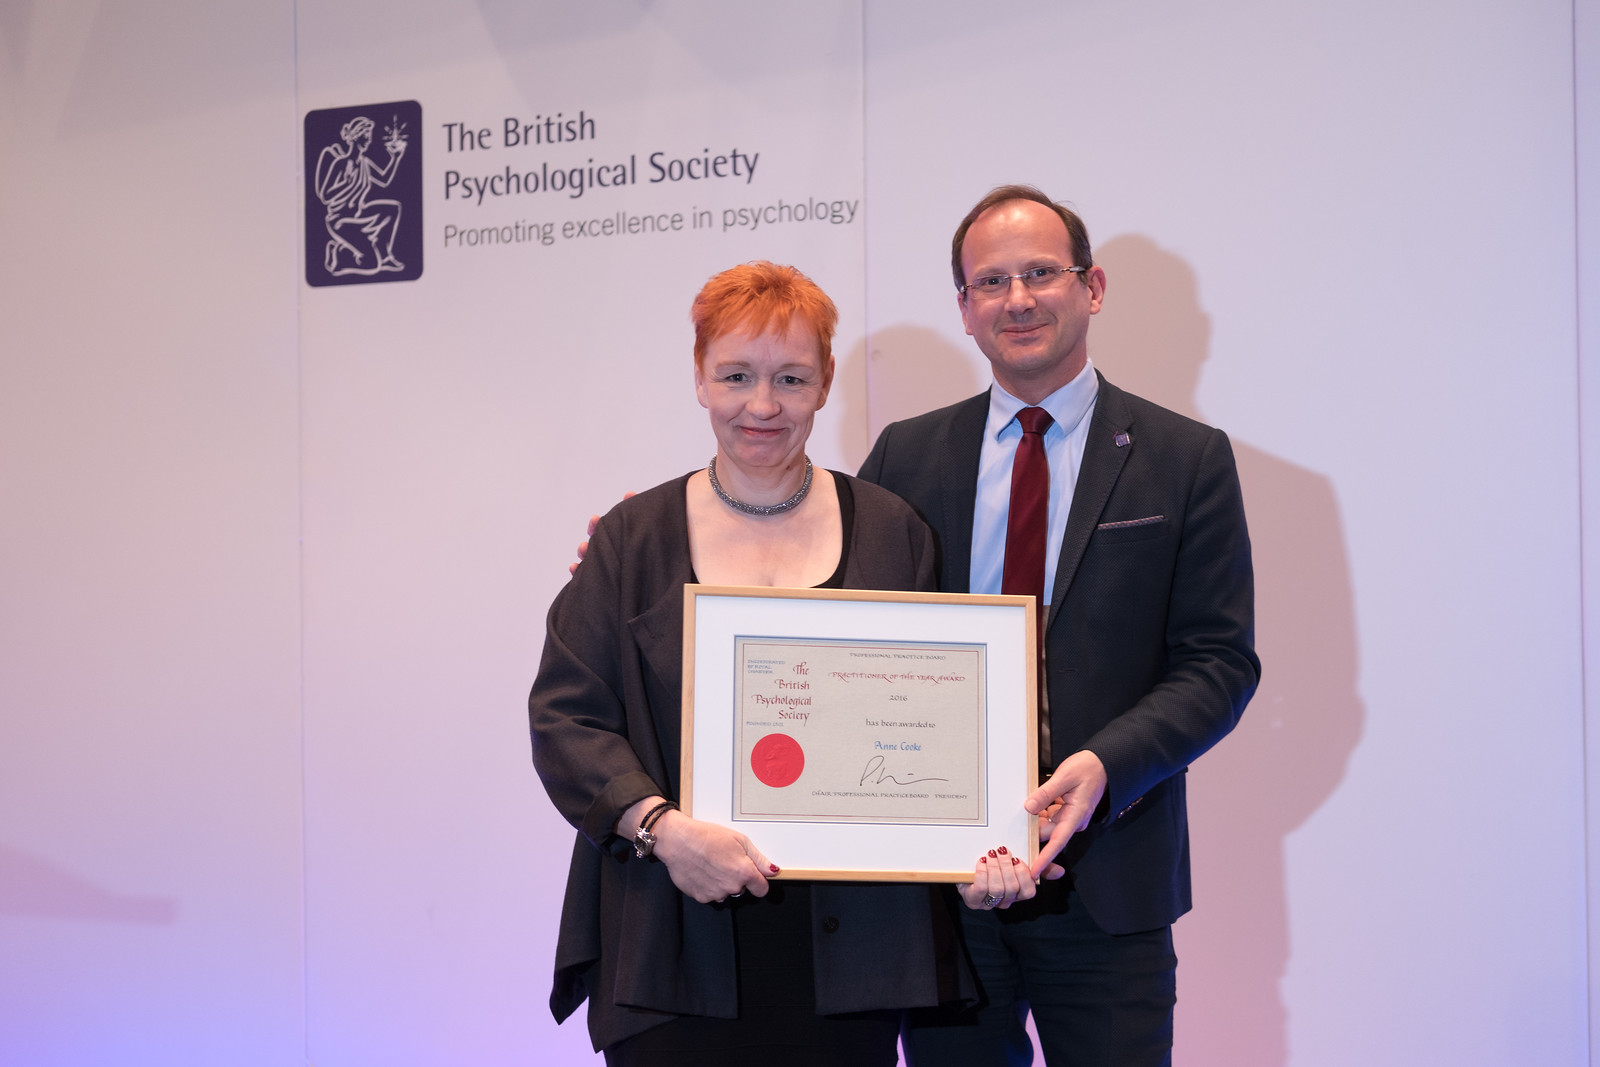 Anne Cooke presented with the British Psychological Society Practitioner of the Year Award